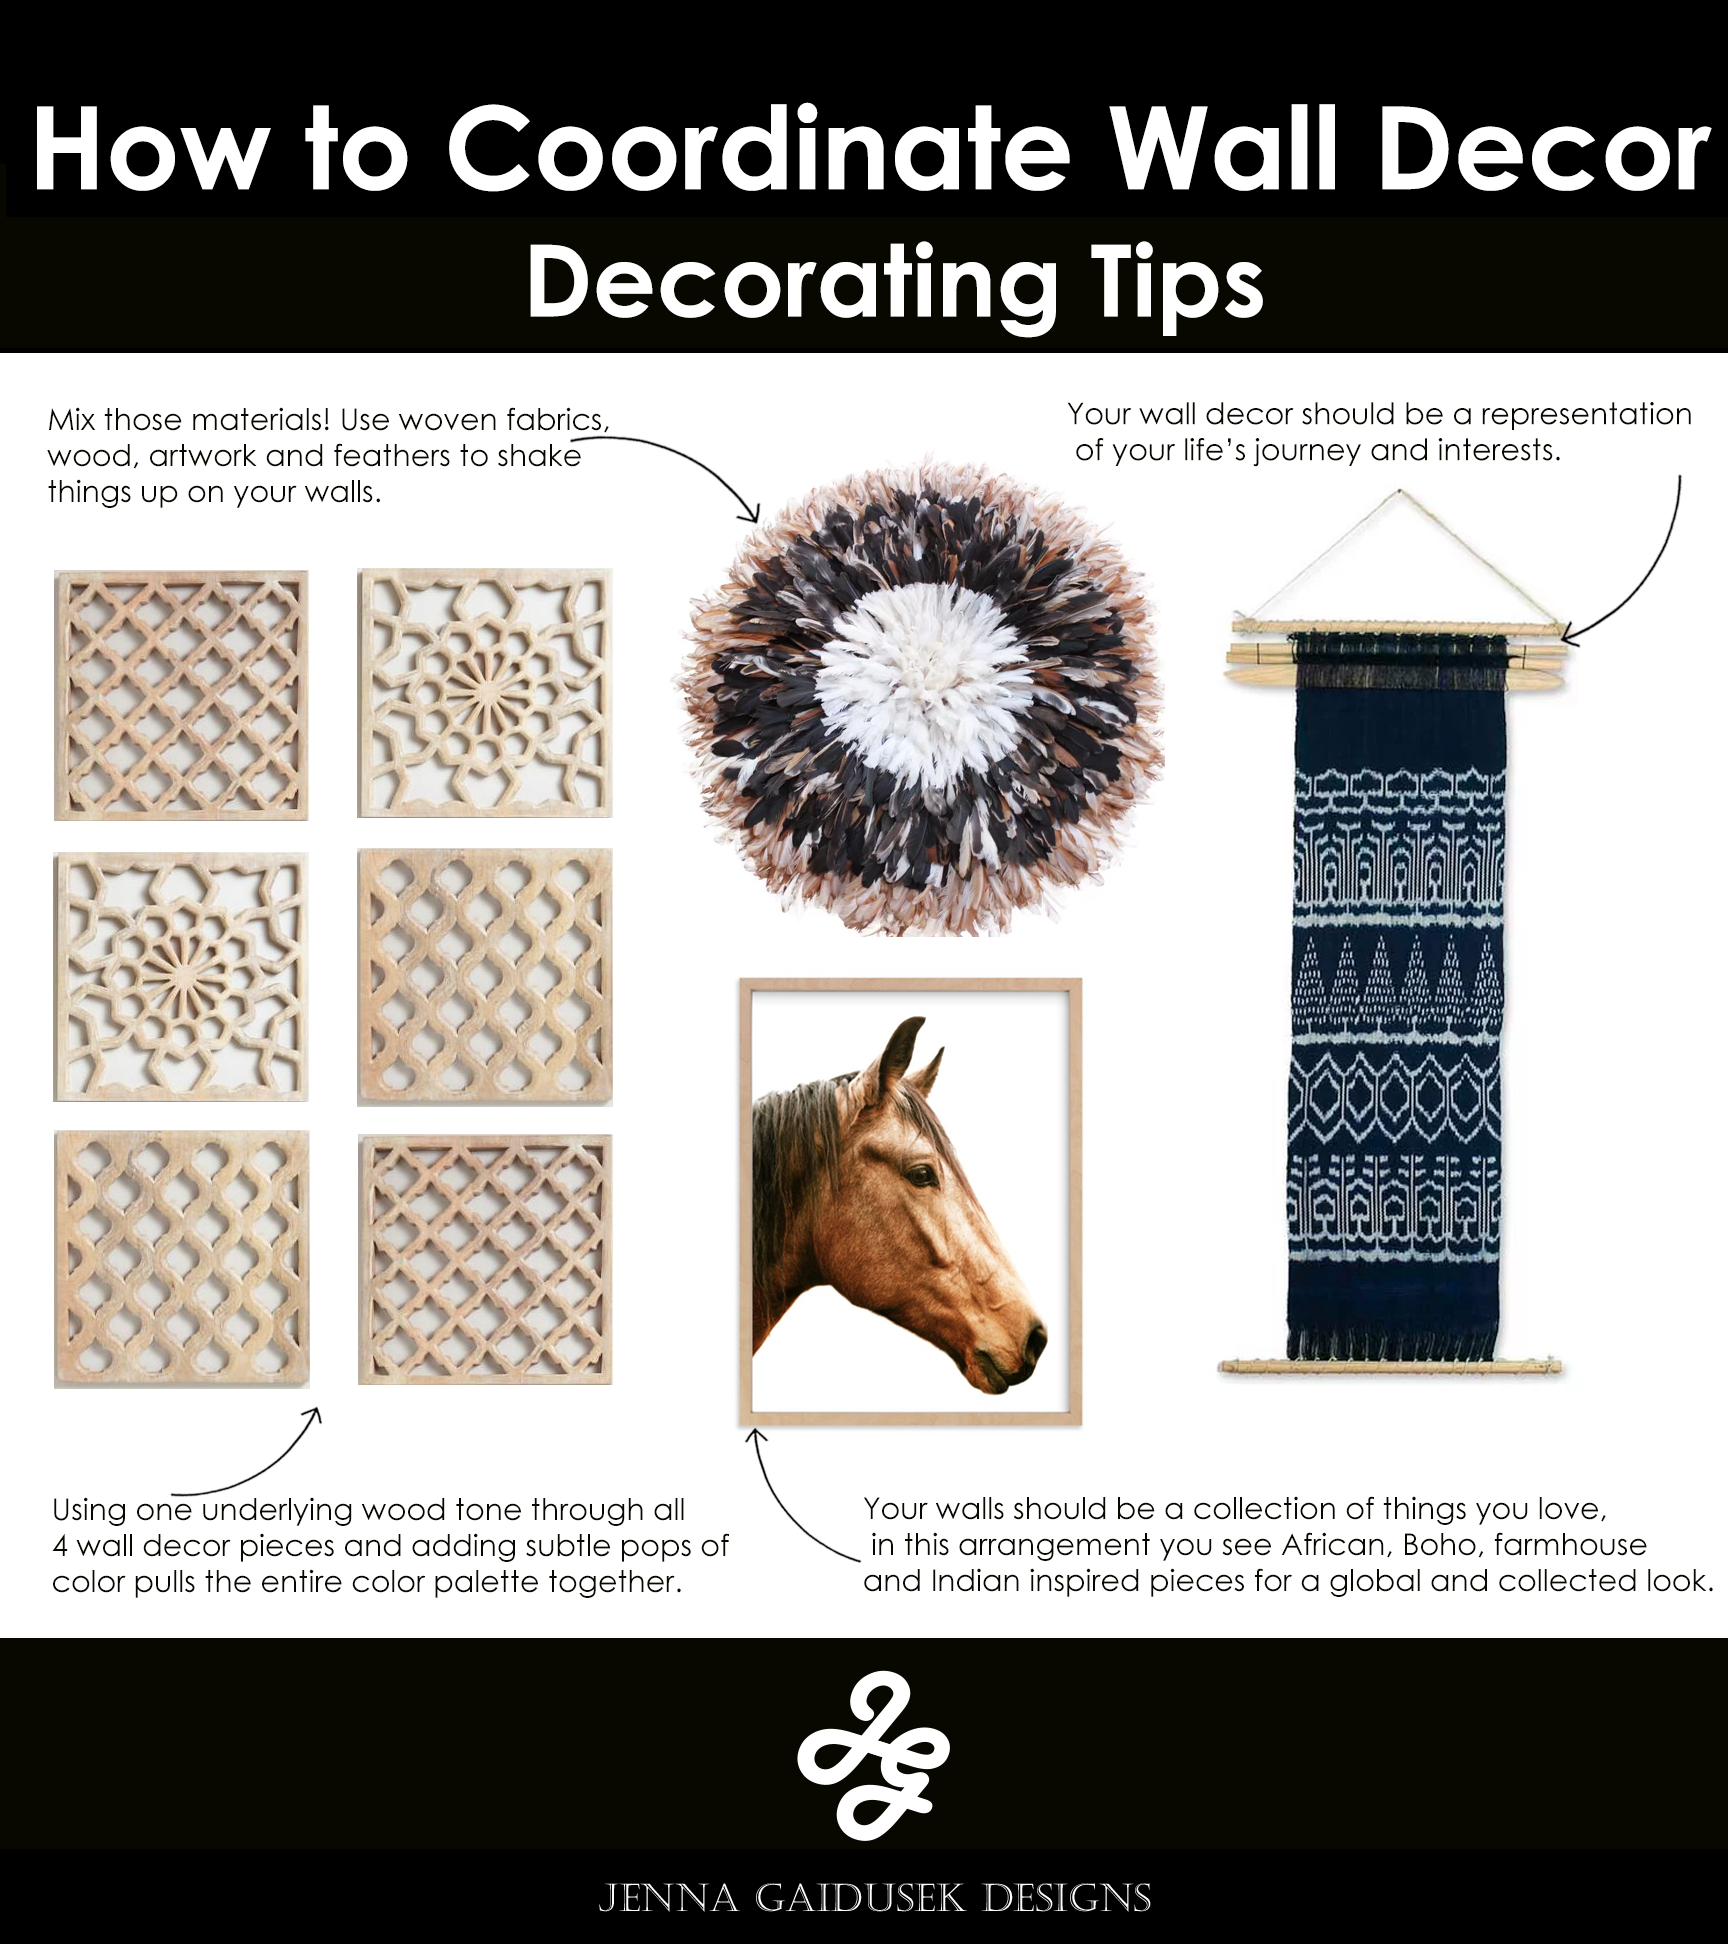 Mix those materials! Use woven fabrics, wood, artwork and feathers to shake things up on your walls.   Using one underlying wood tone through all 4 wall decor pieces and adding subtle pops of color pulls the entire color palette together.   Your walls should be a collection of things you love, in this arrangement you see African, Boho, farmhouse and Indian inspired pieces for a global and collected look.   Your wall decor should be a representation of your life's journey and interests.